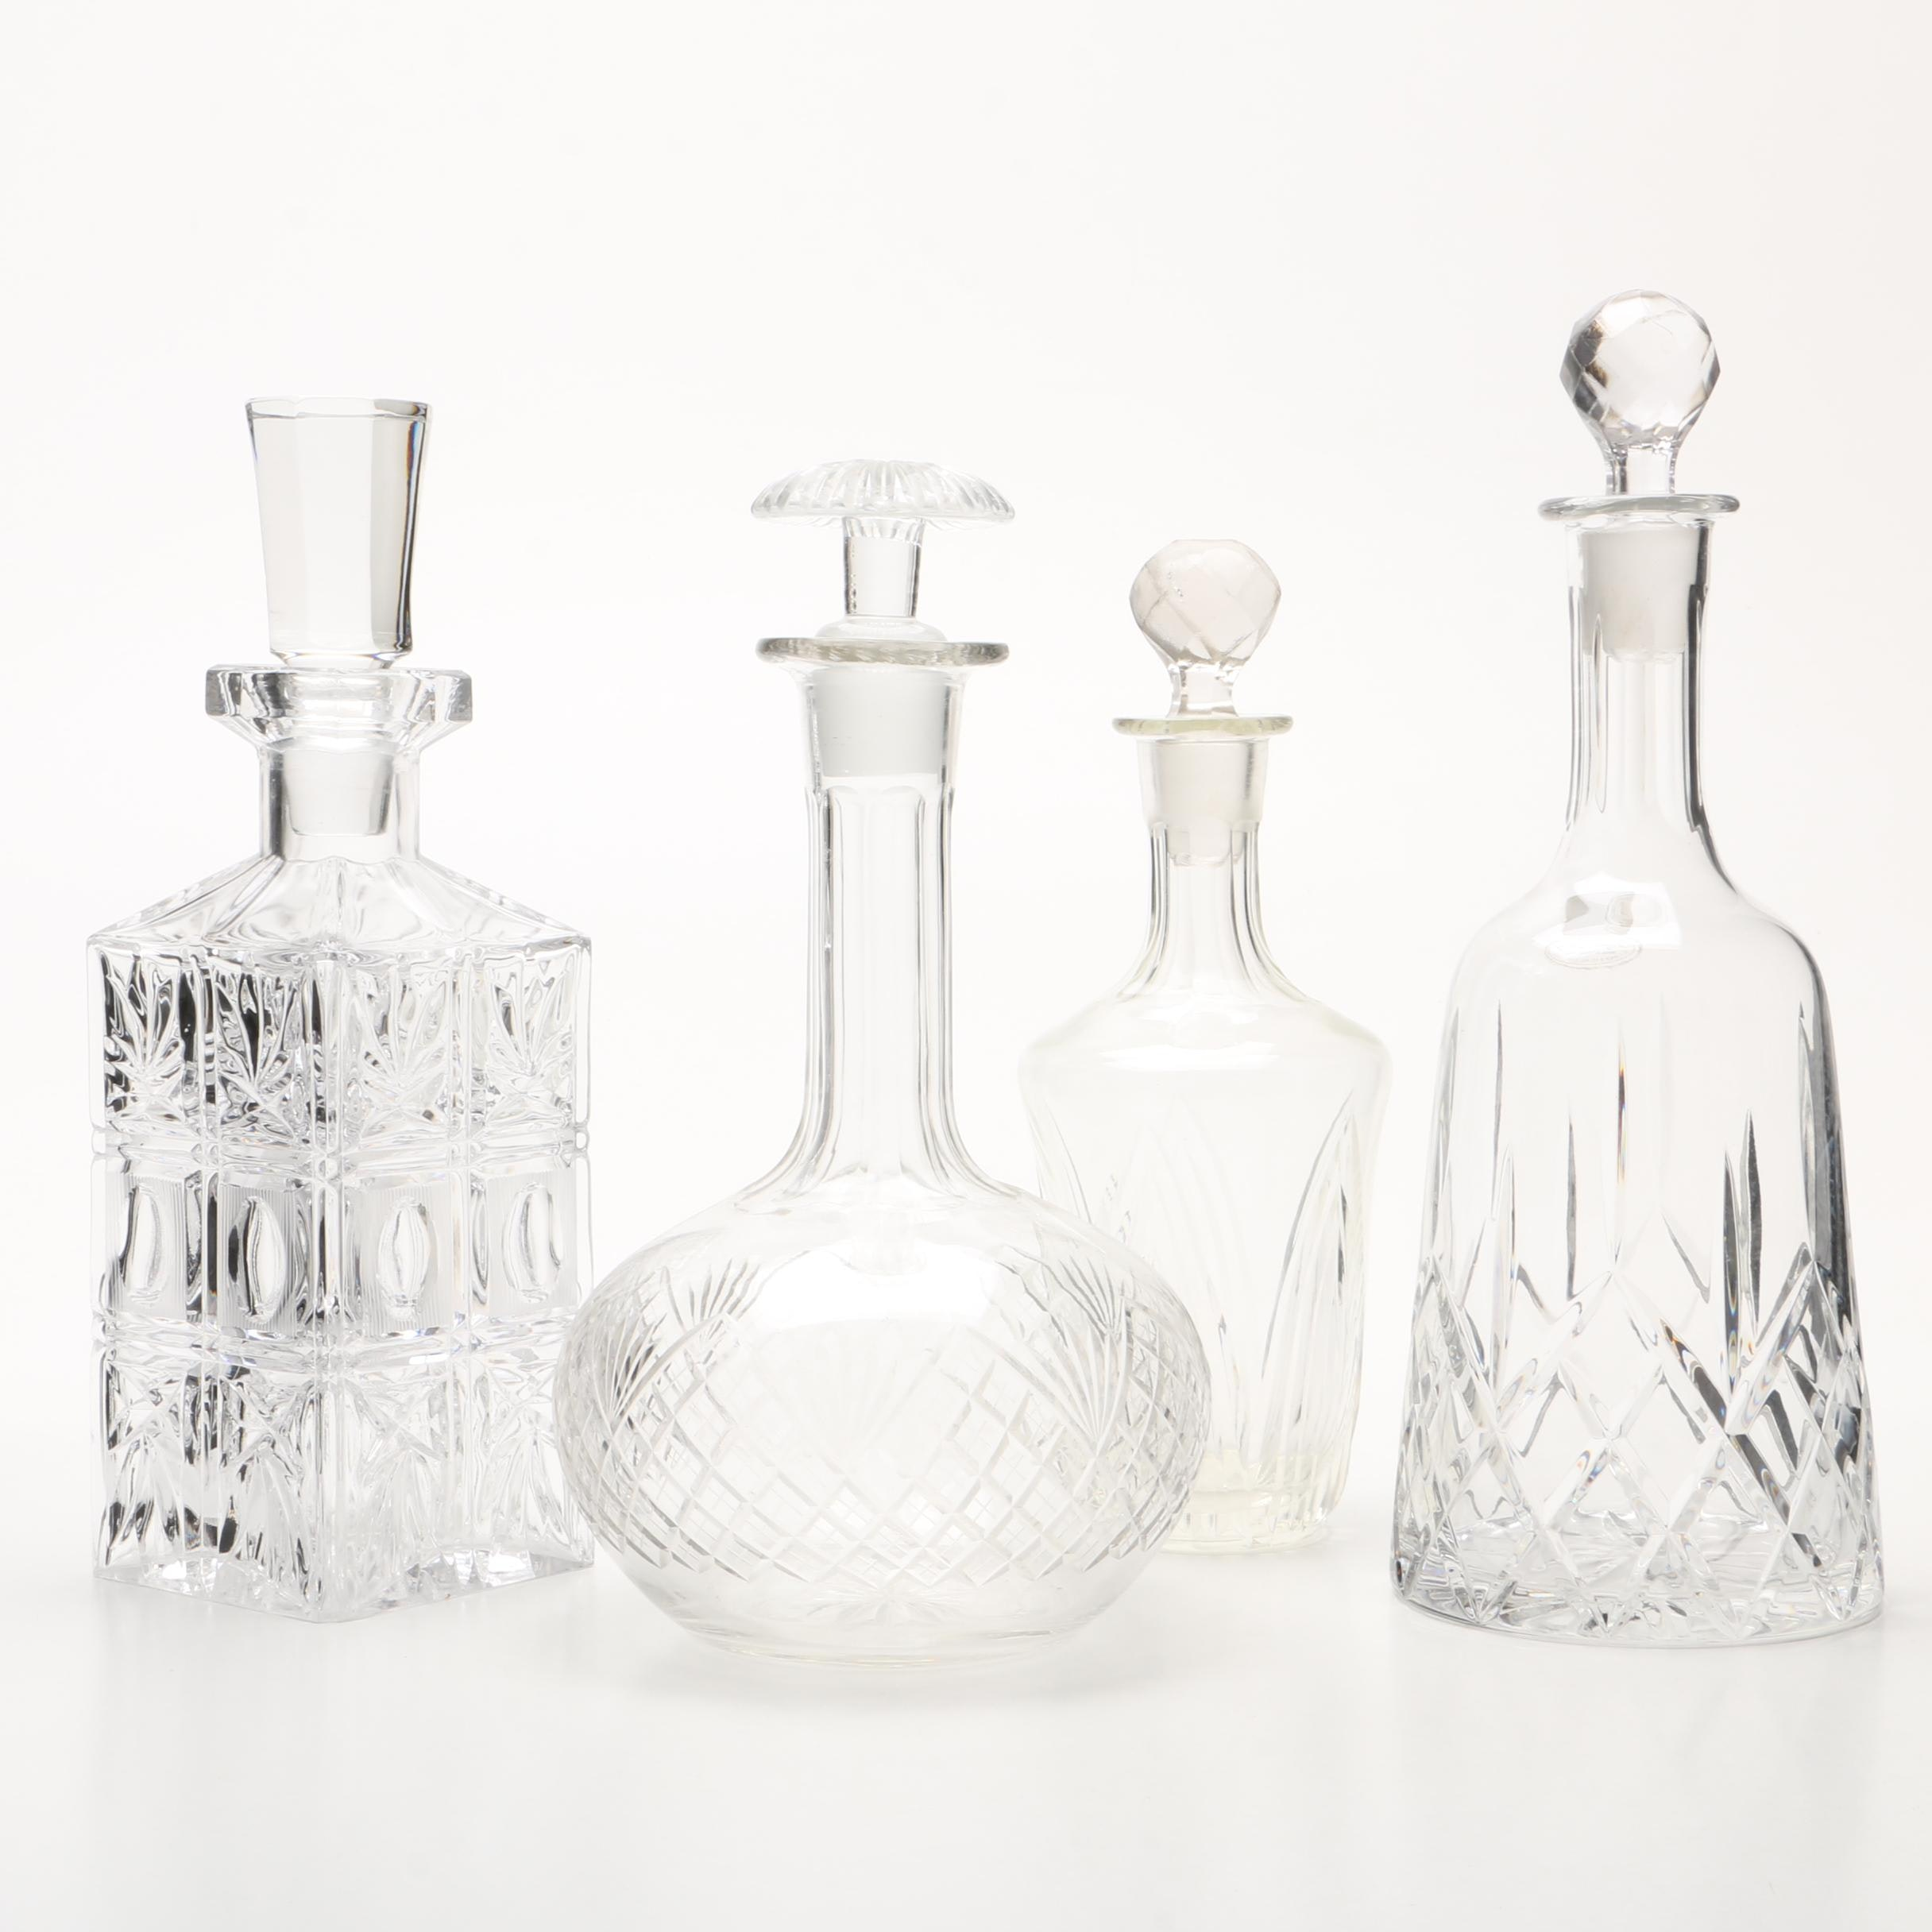 Four Cut and Molded Glass Decanters and Stoppers, 20th Century